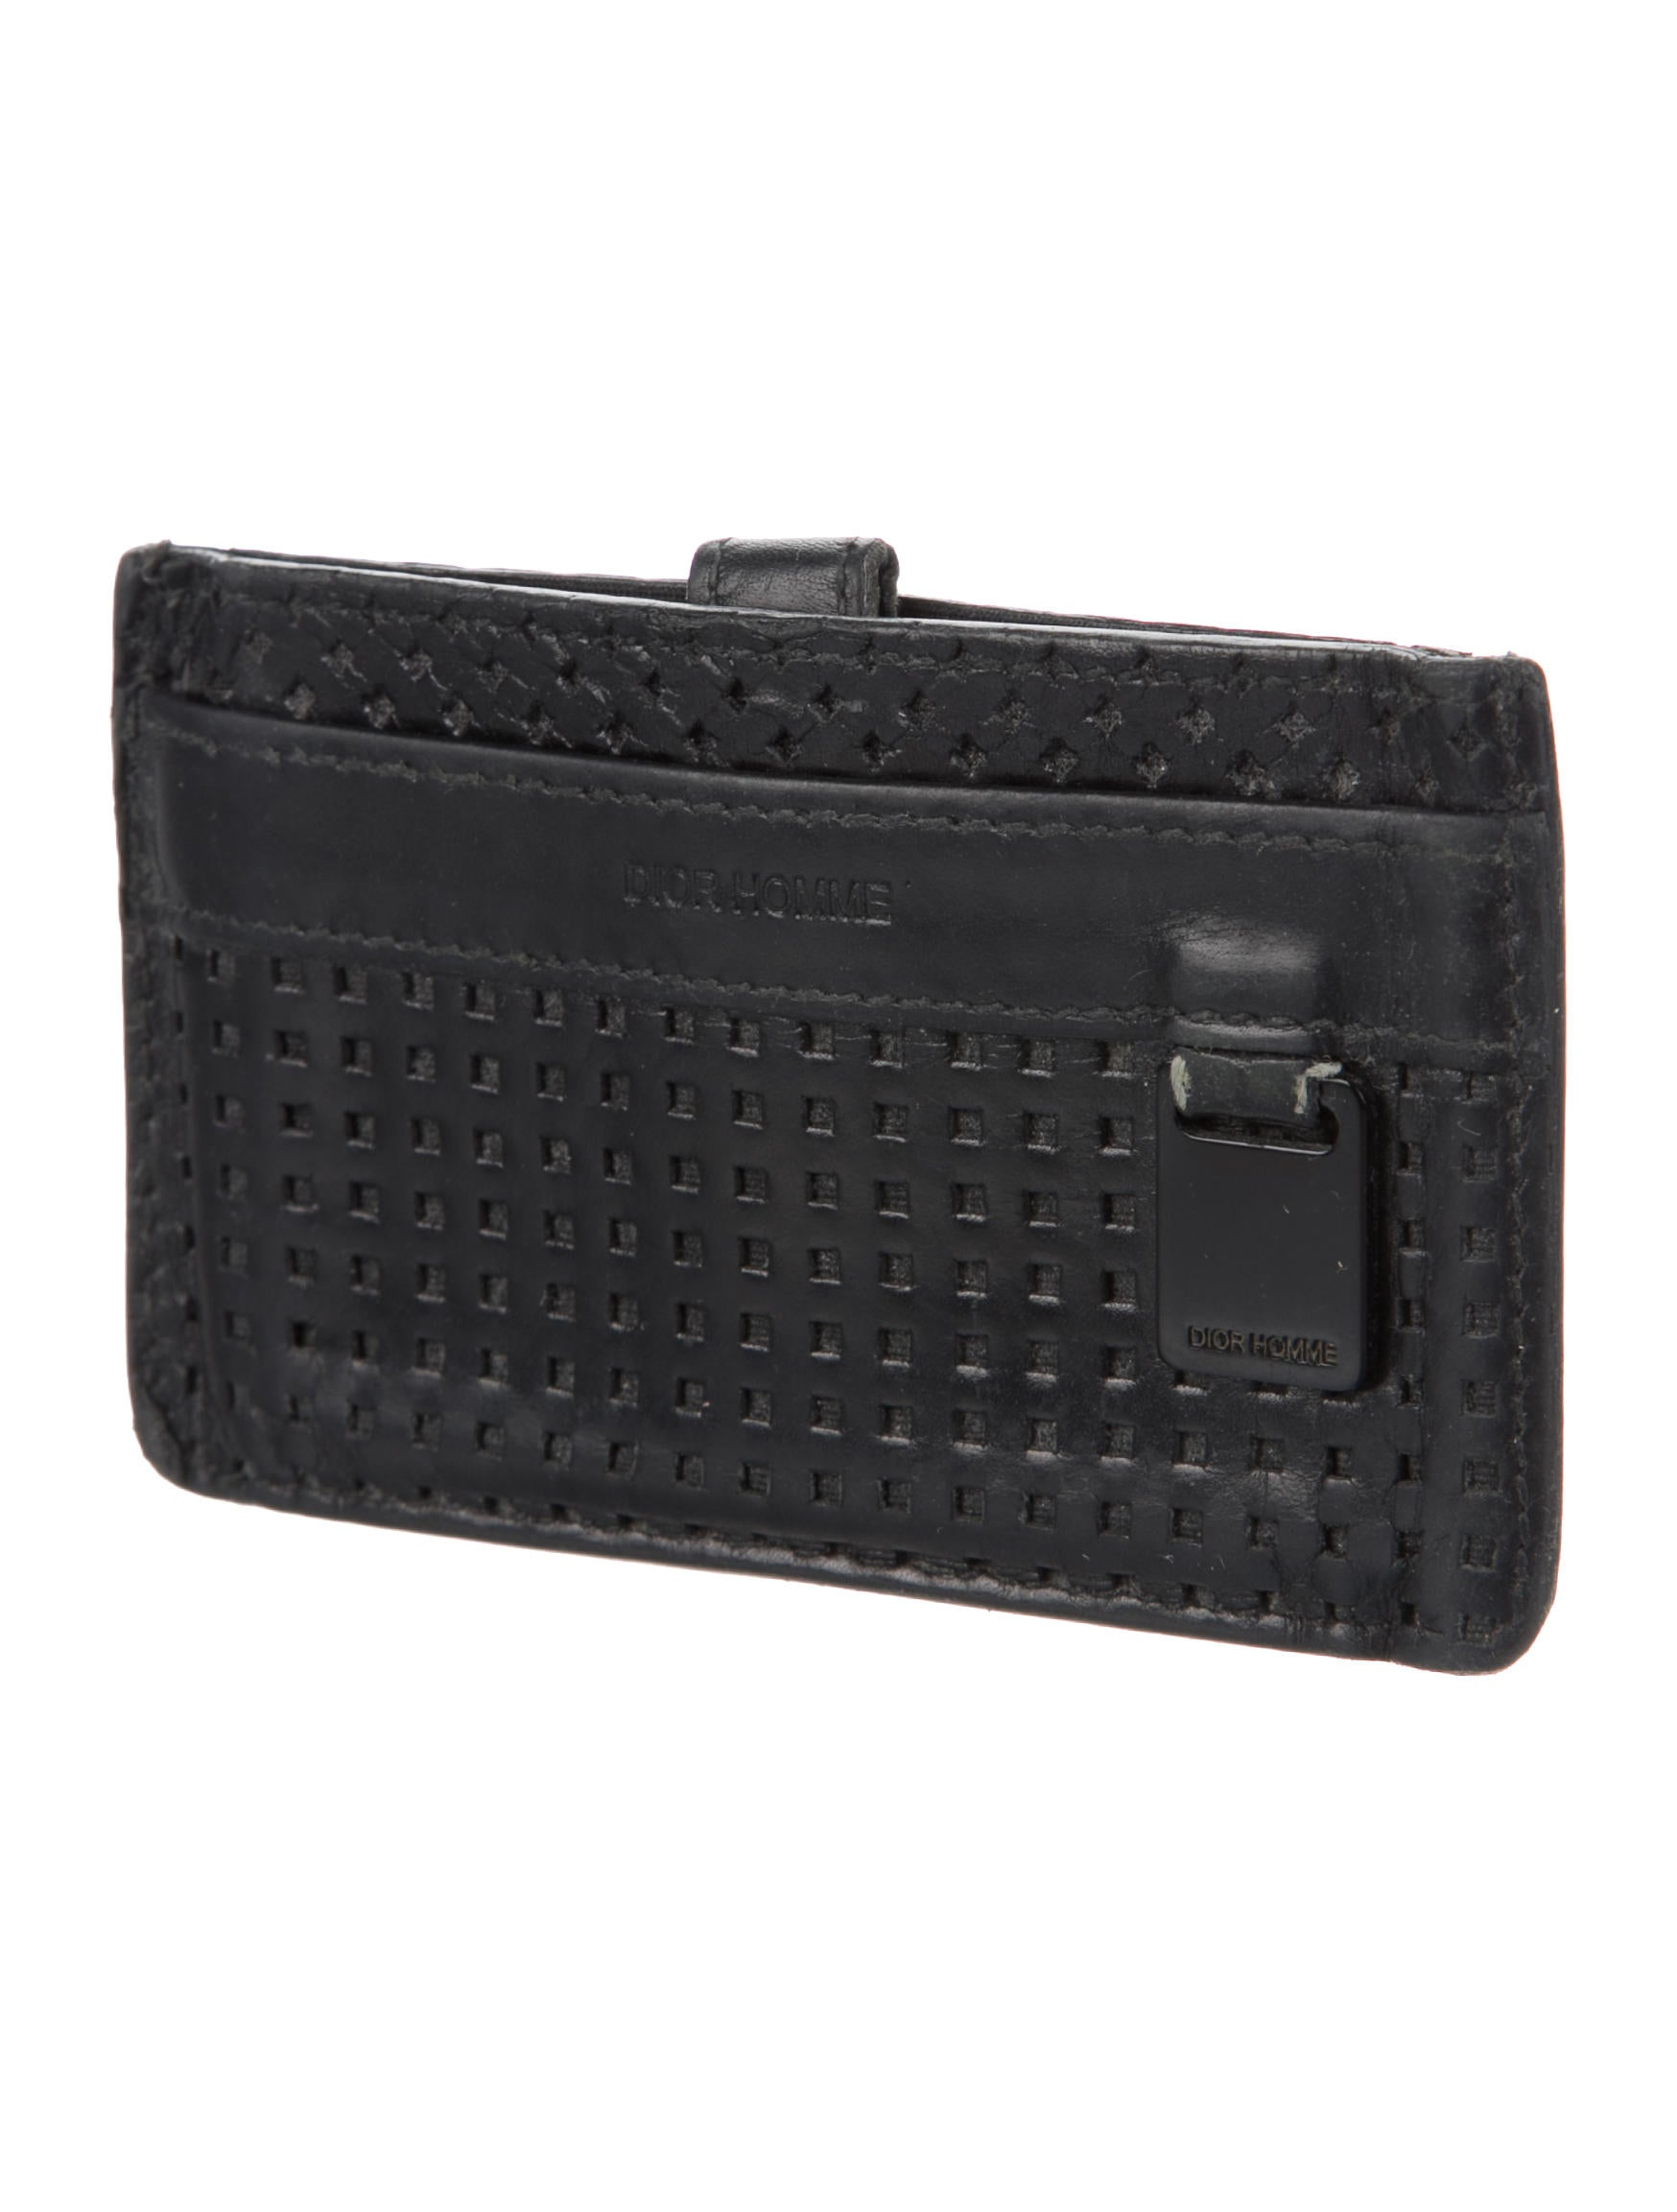 Dior Homme 2007 Logo Leather Card Holder - Accessories - HMM24502 ...